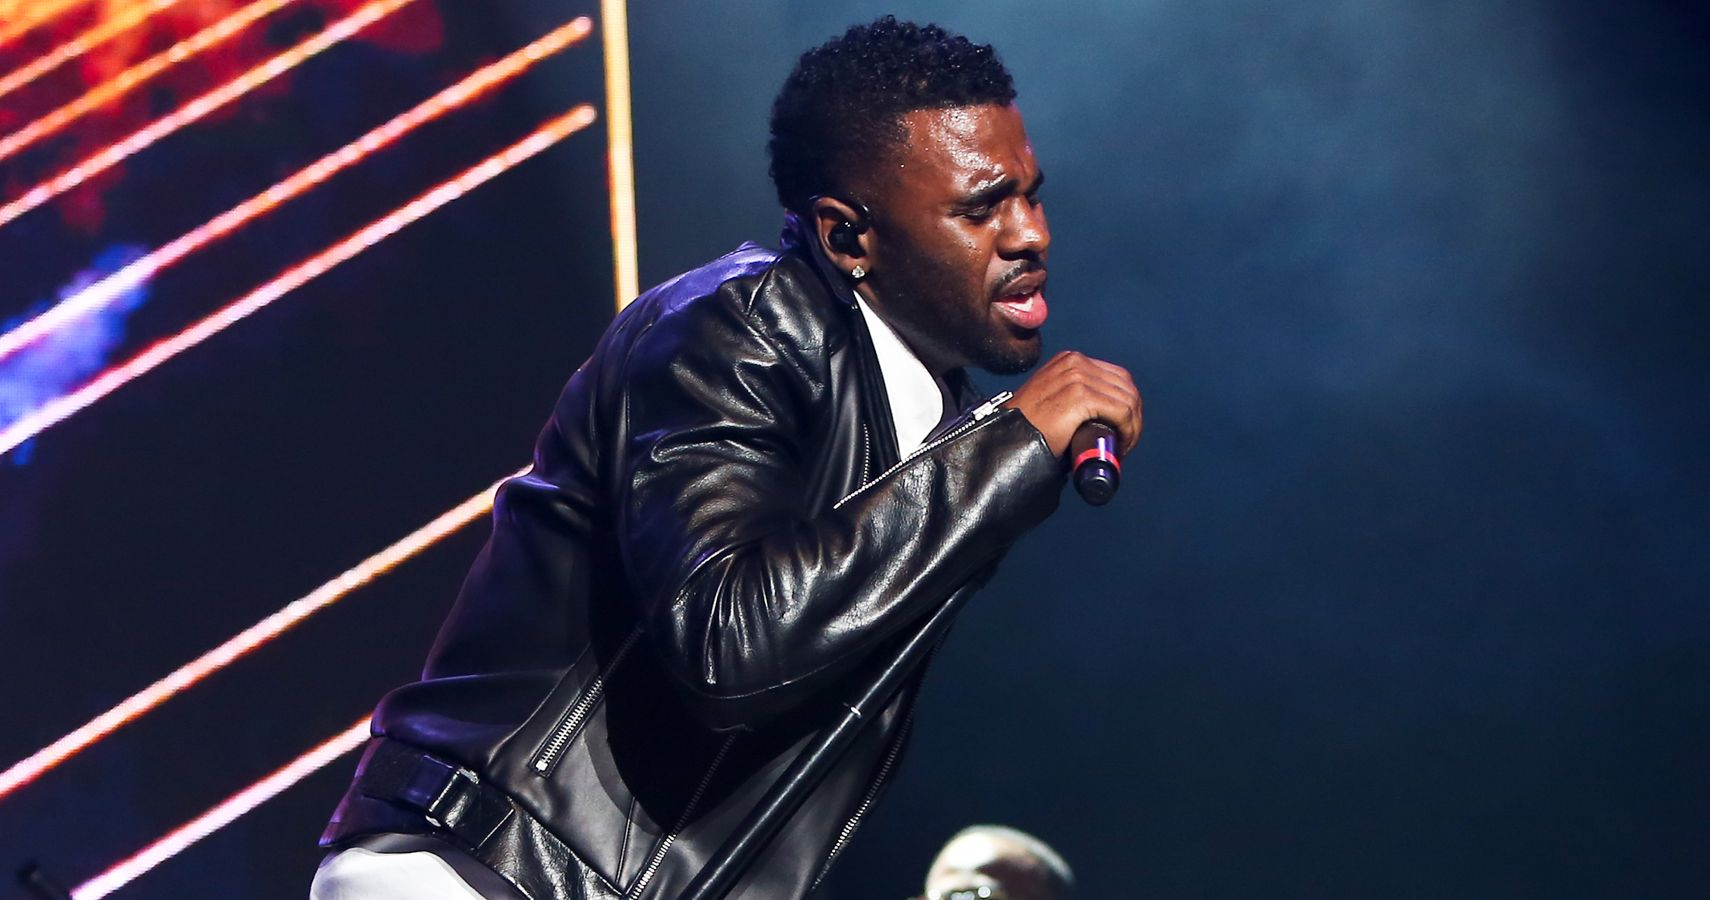 The Incredible Ways Jason Derulo Earns And Spends His Million Dollar Fortune - TheRichest